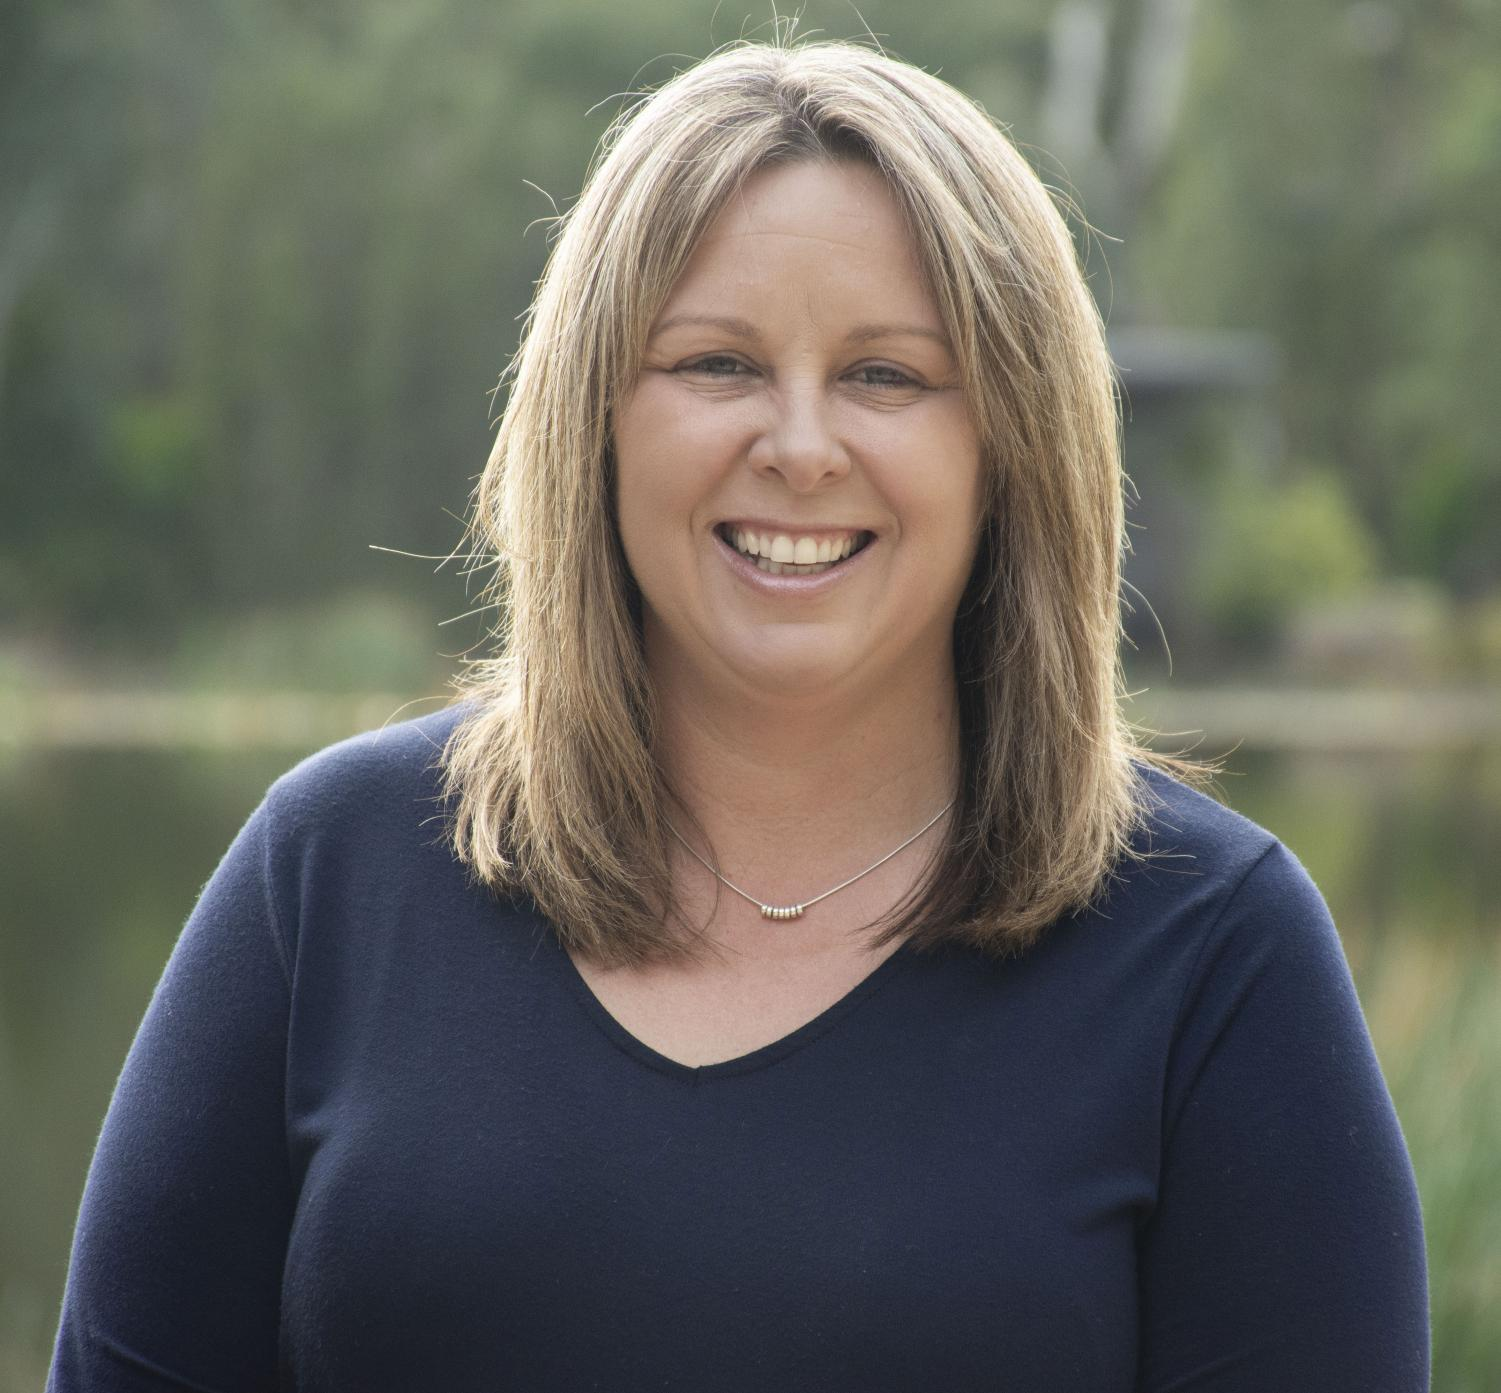 Independent candidate Tracie Lund is standing as a candidate for the Morwell electorate for the second time.